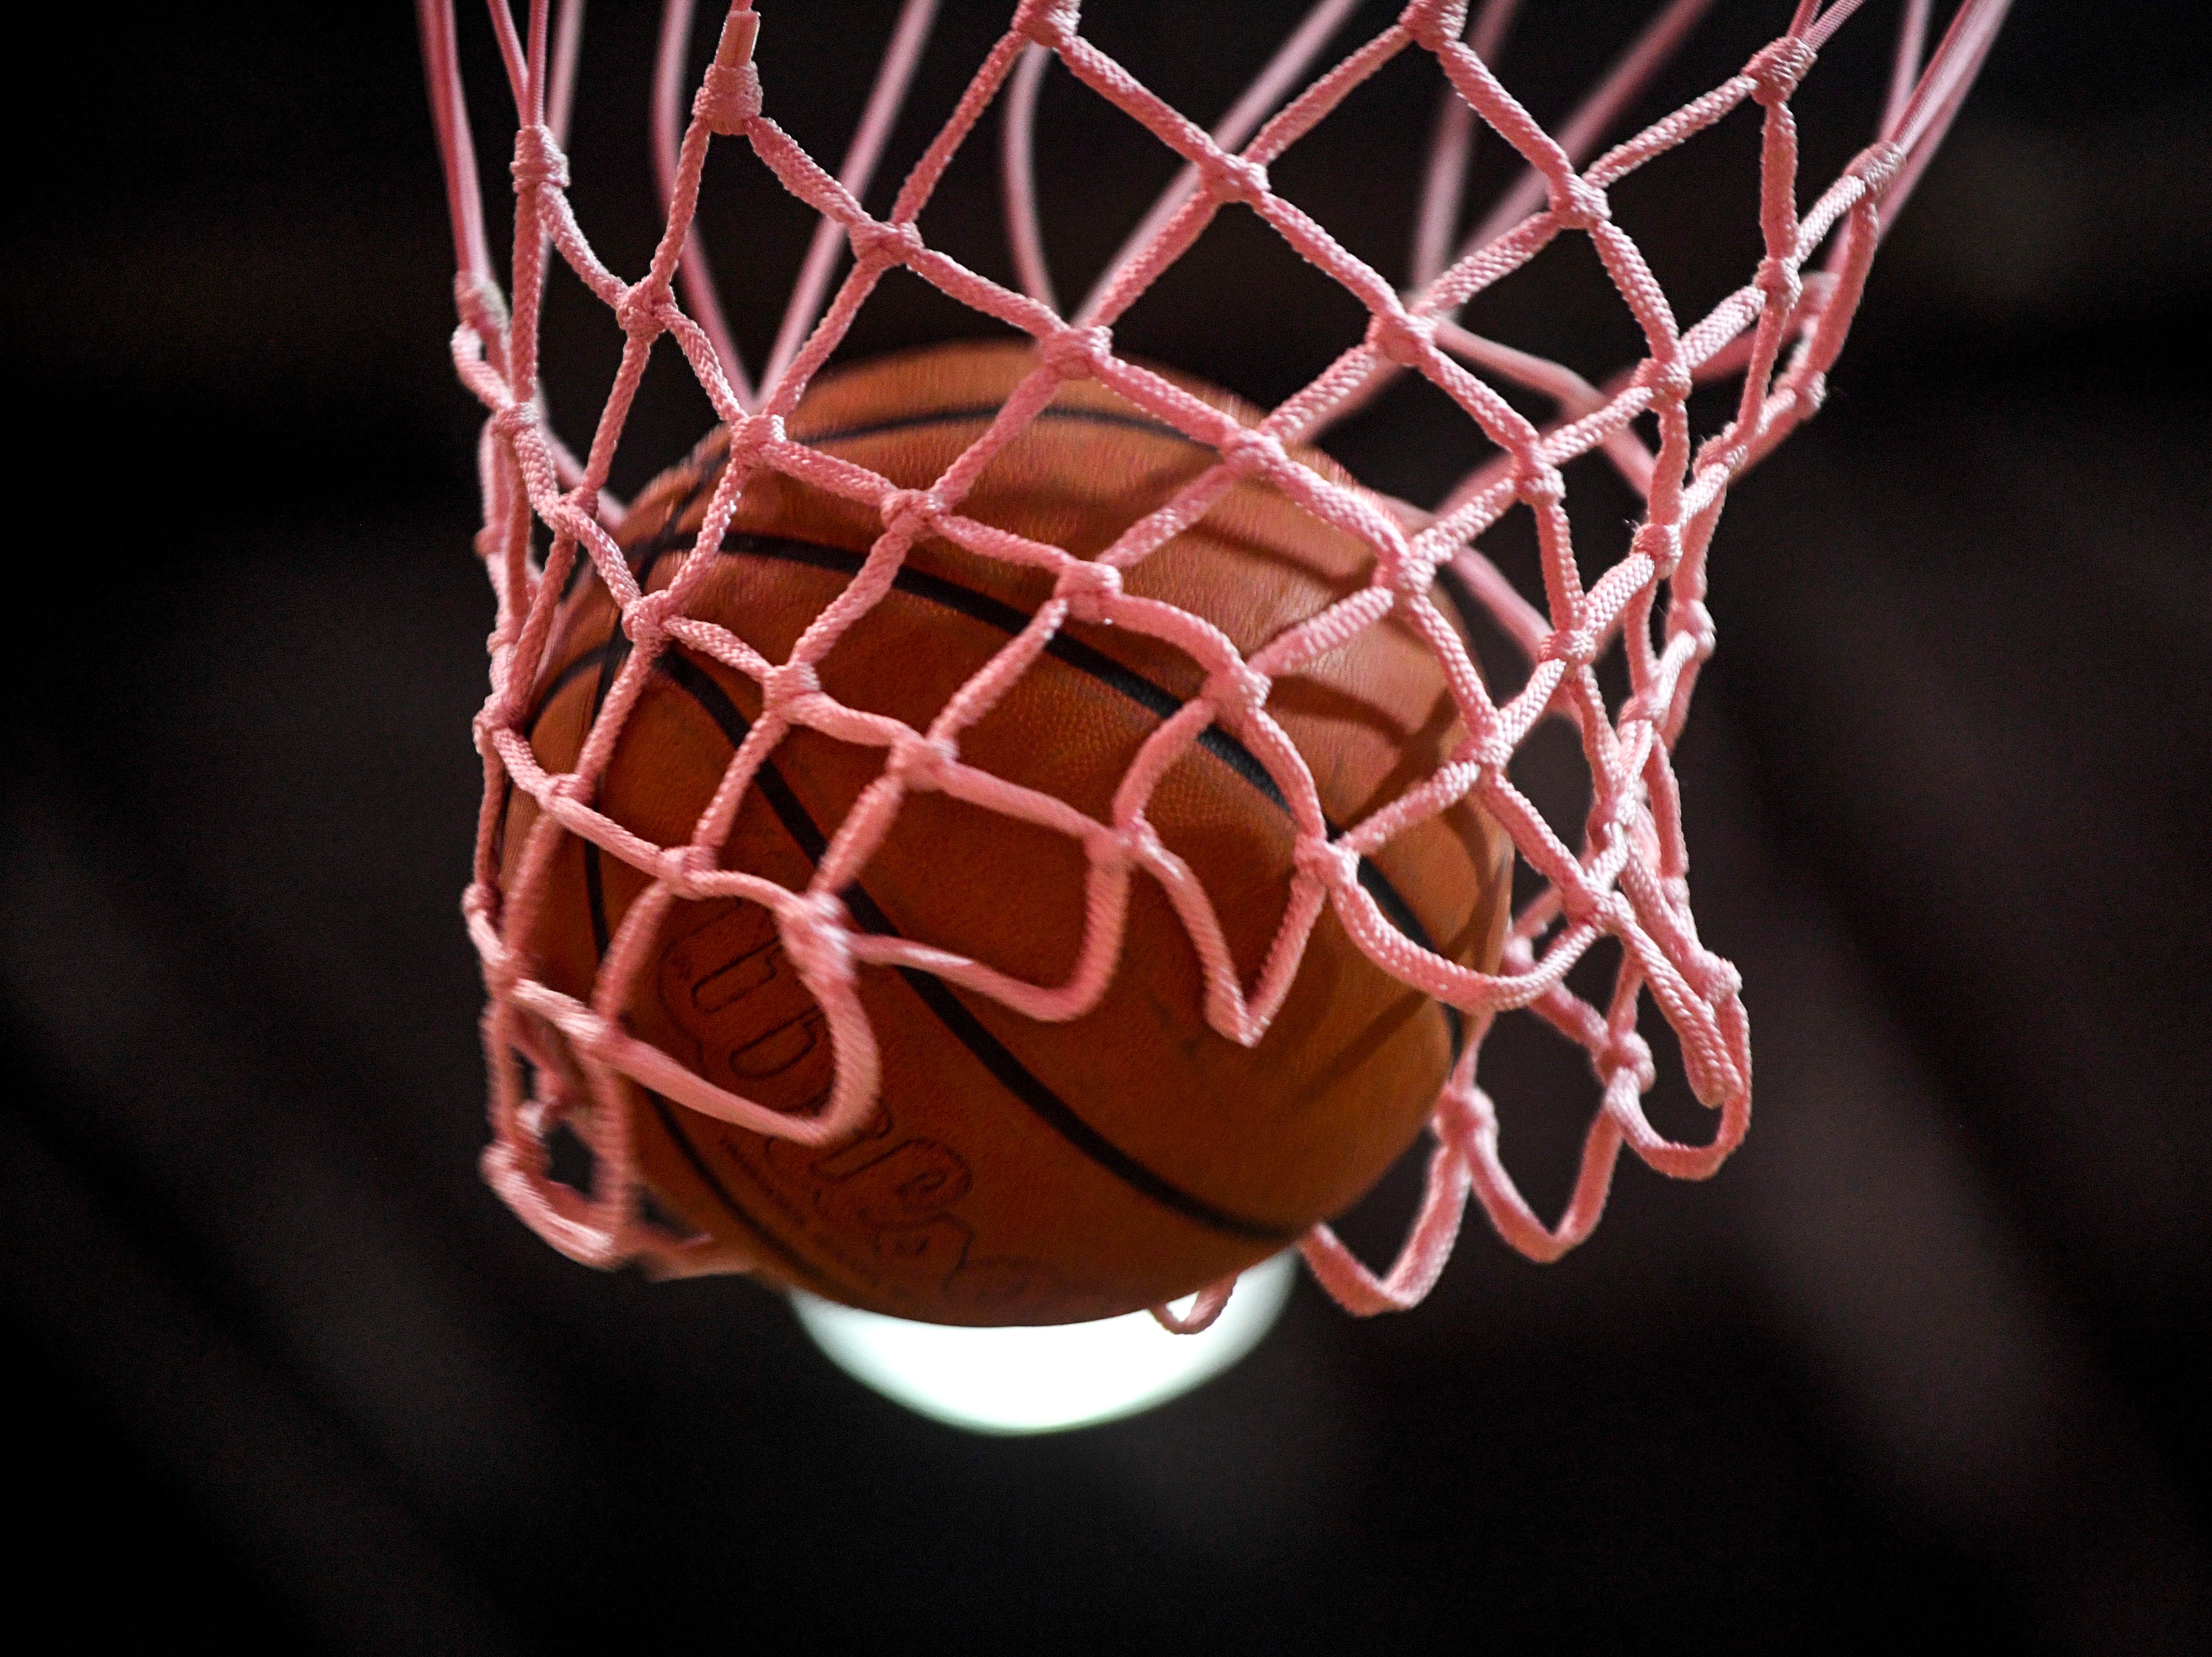 A basketball lands in the net during a TSSAA basketball game between Peabody and Gibson County at Peabody High School in Trenton, Tenn., on Friday, Feb. 8, 2019.